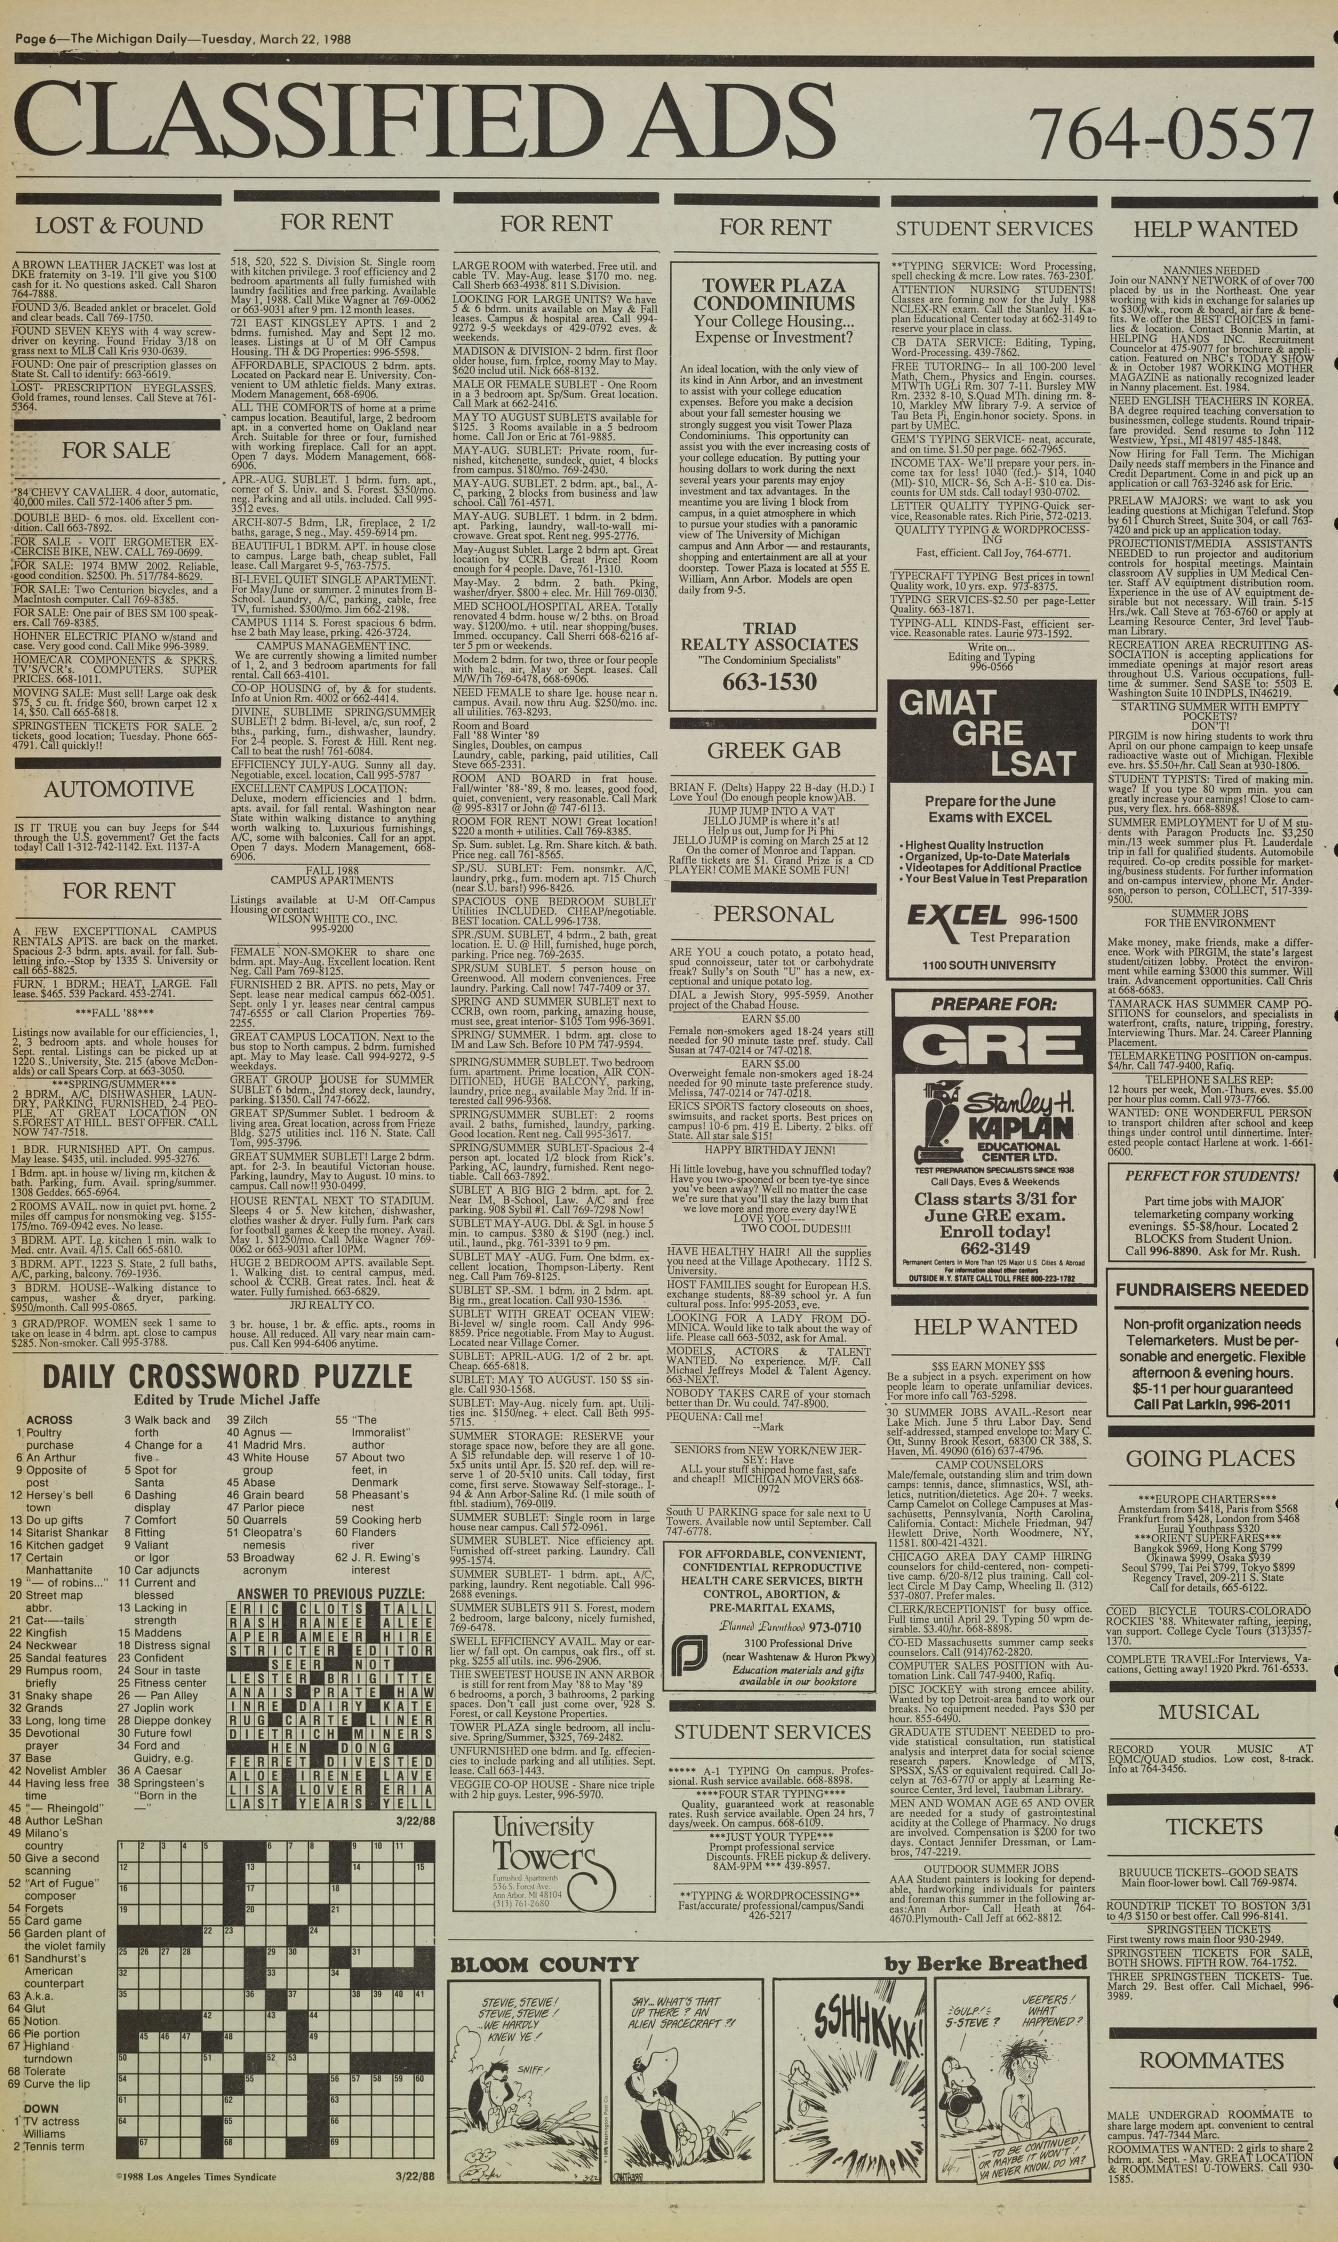 Michigan Daily Digital Archives - March 22, 1988 (vol  98, iss  115